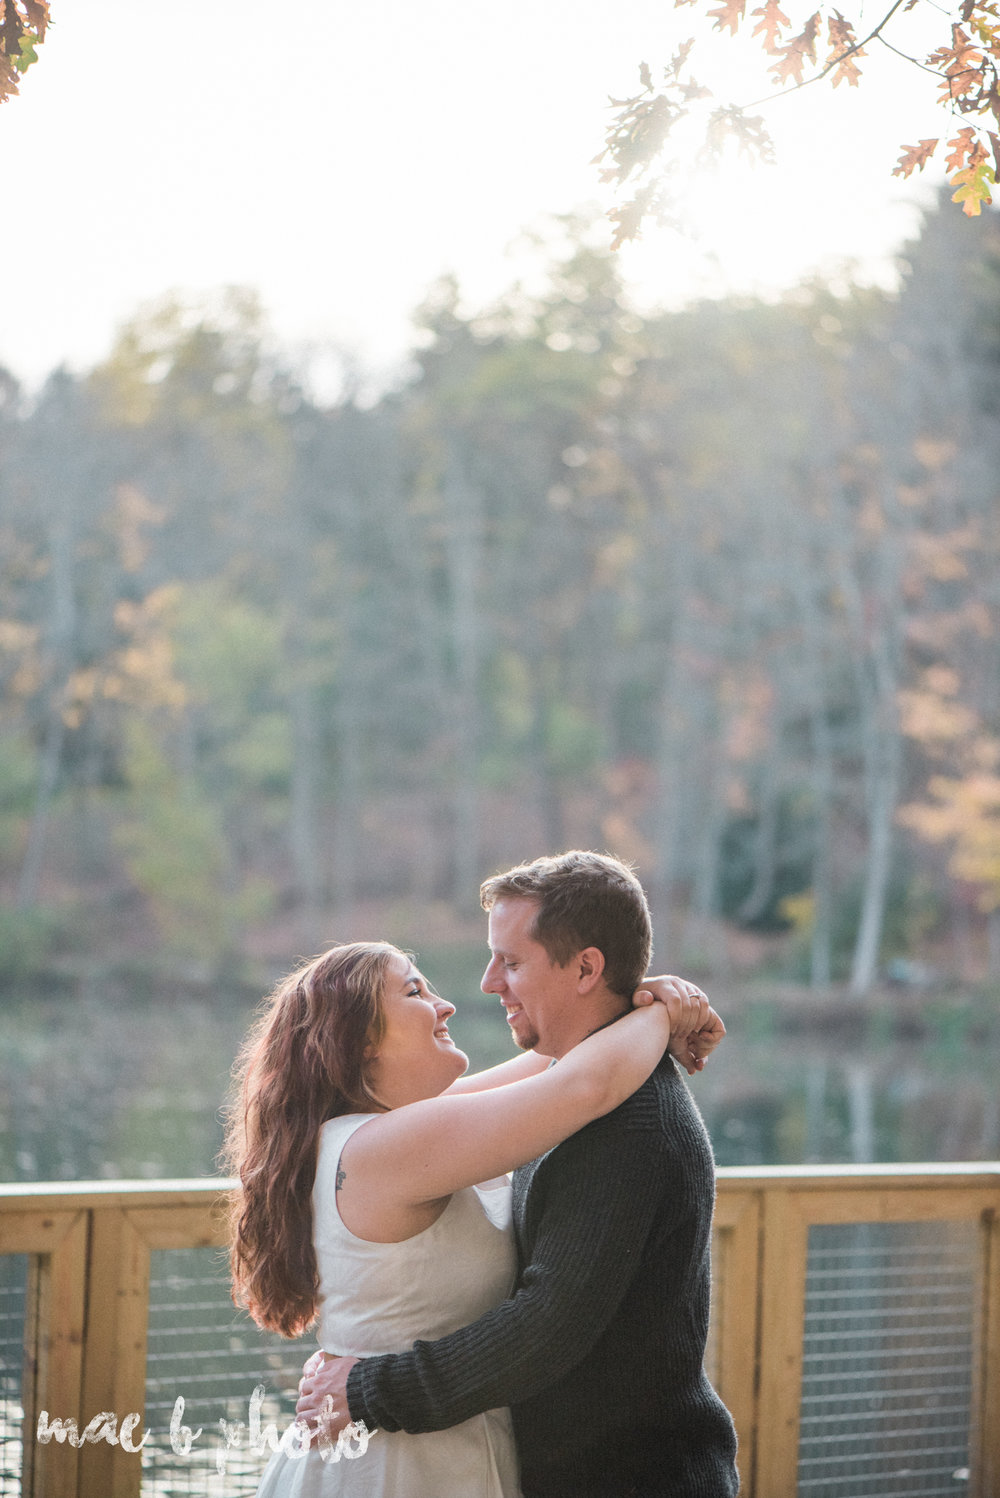 sarah and randy's personal fall engagement session at mill creek park in youngstown ohio-17.jpg